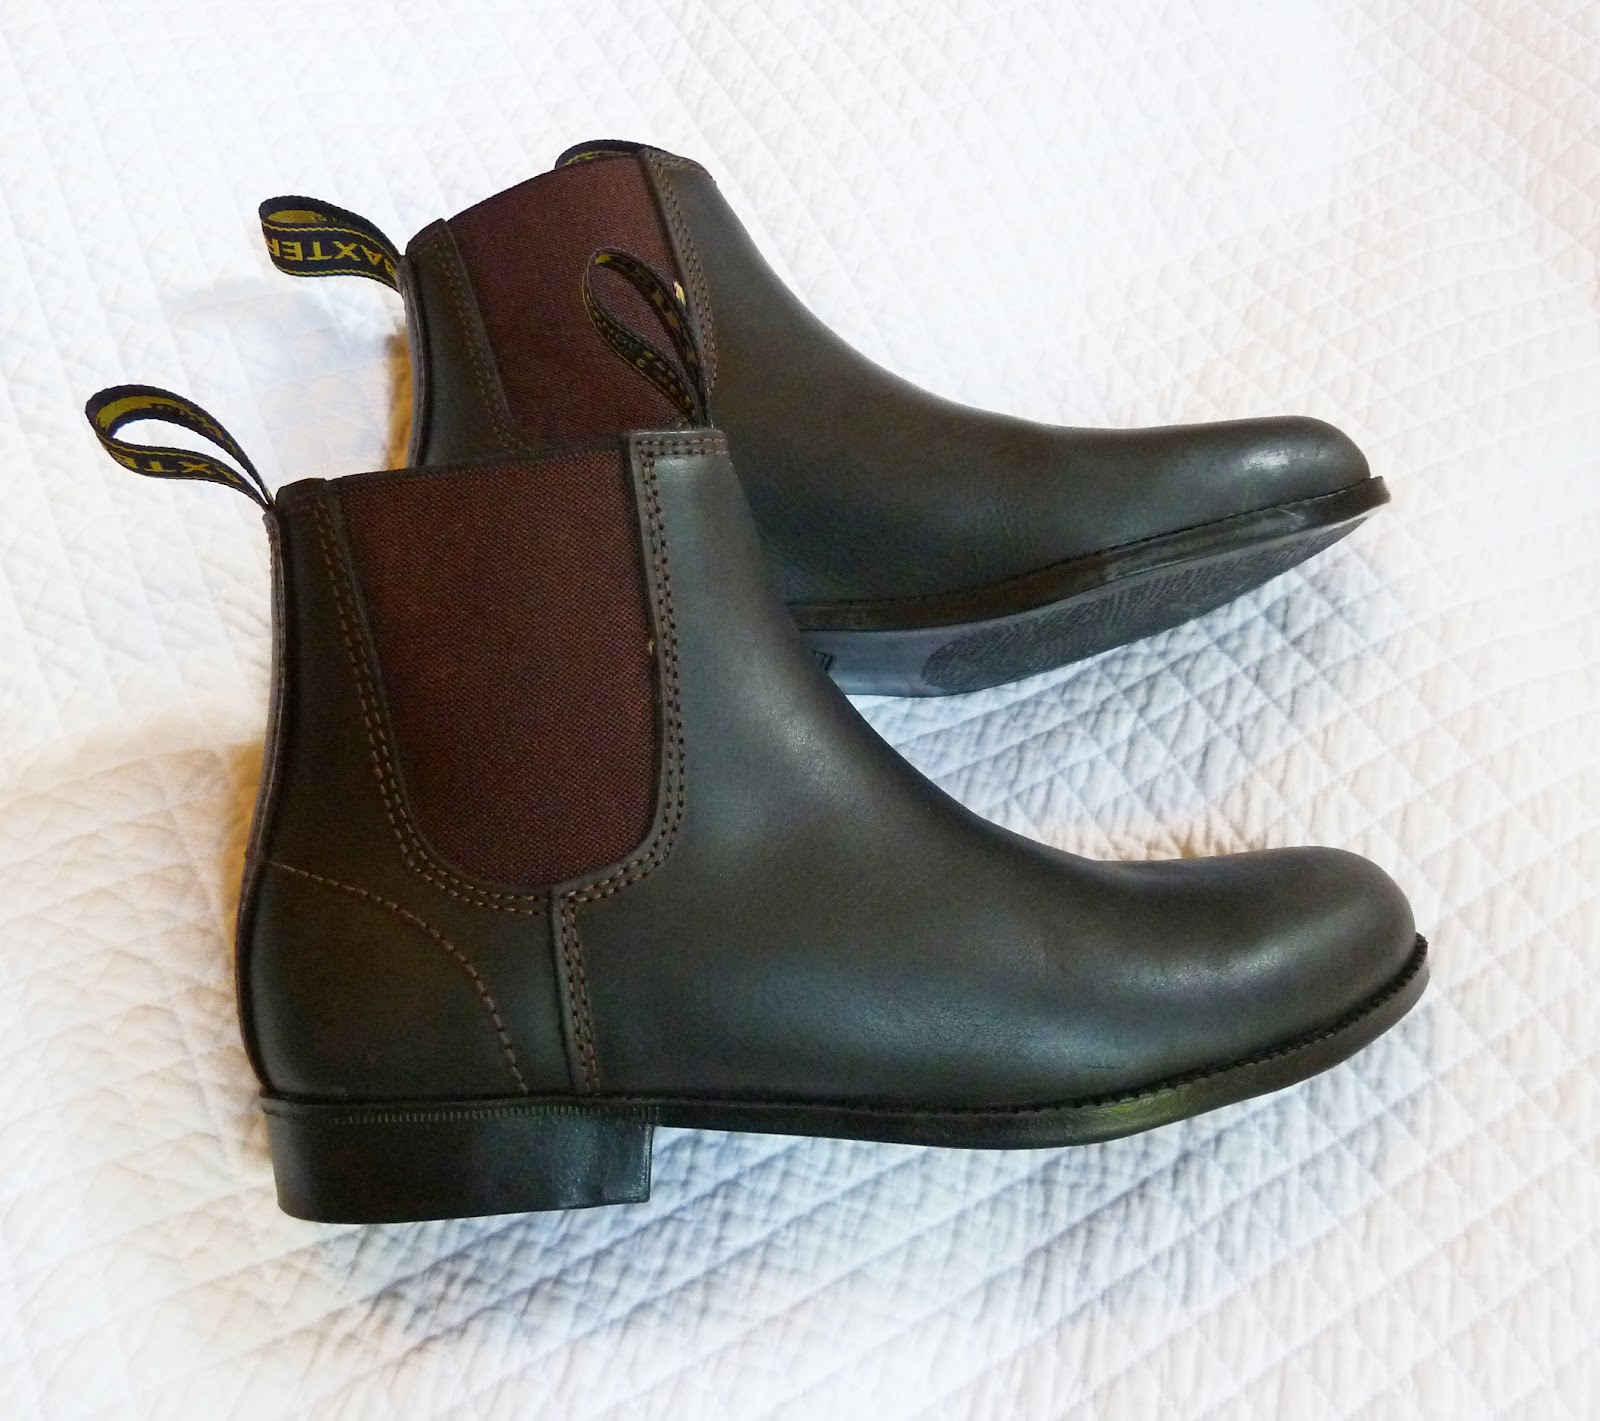 where to buy blundstones in sydney - photo#34